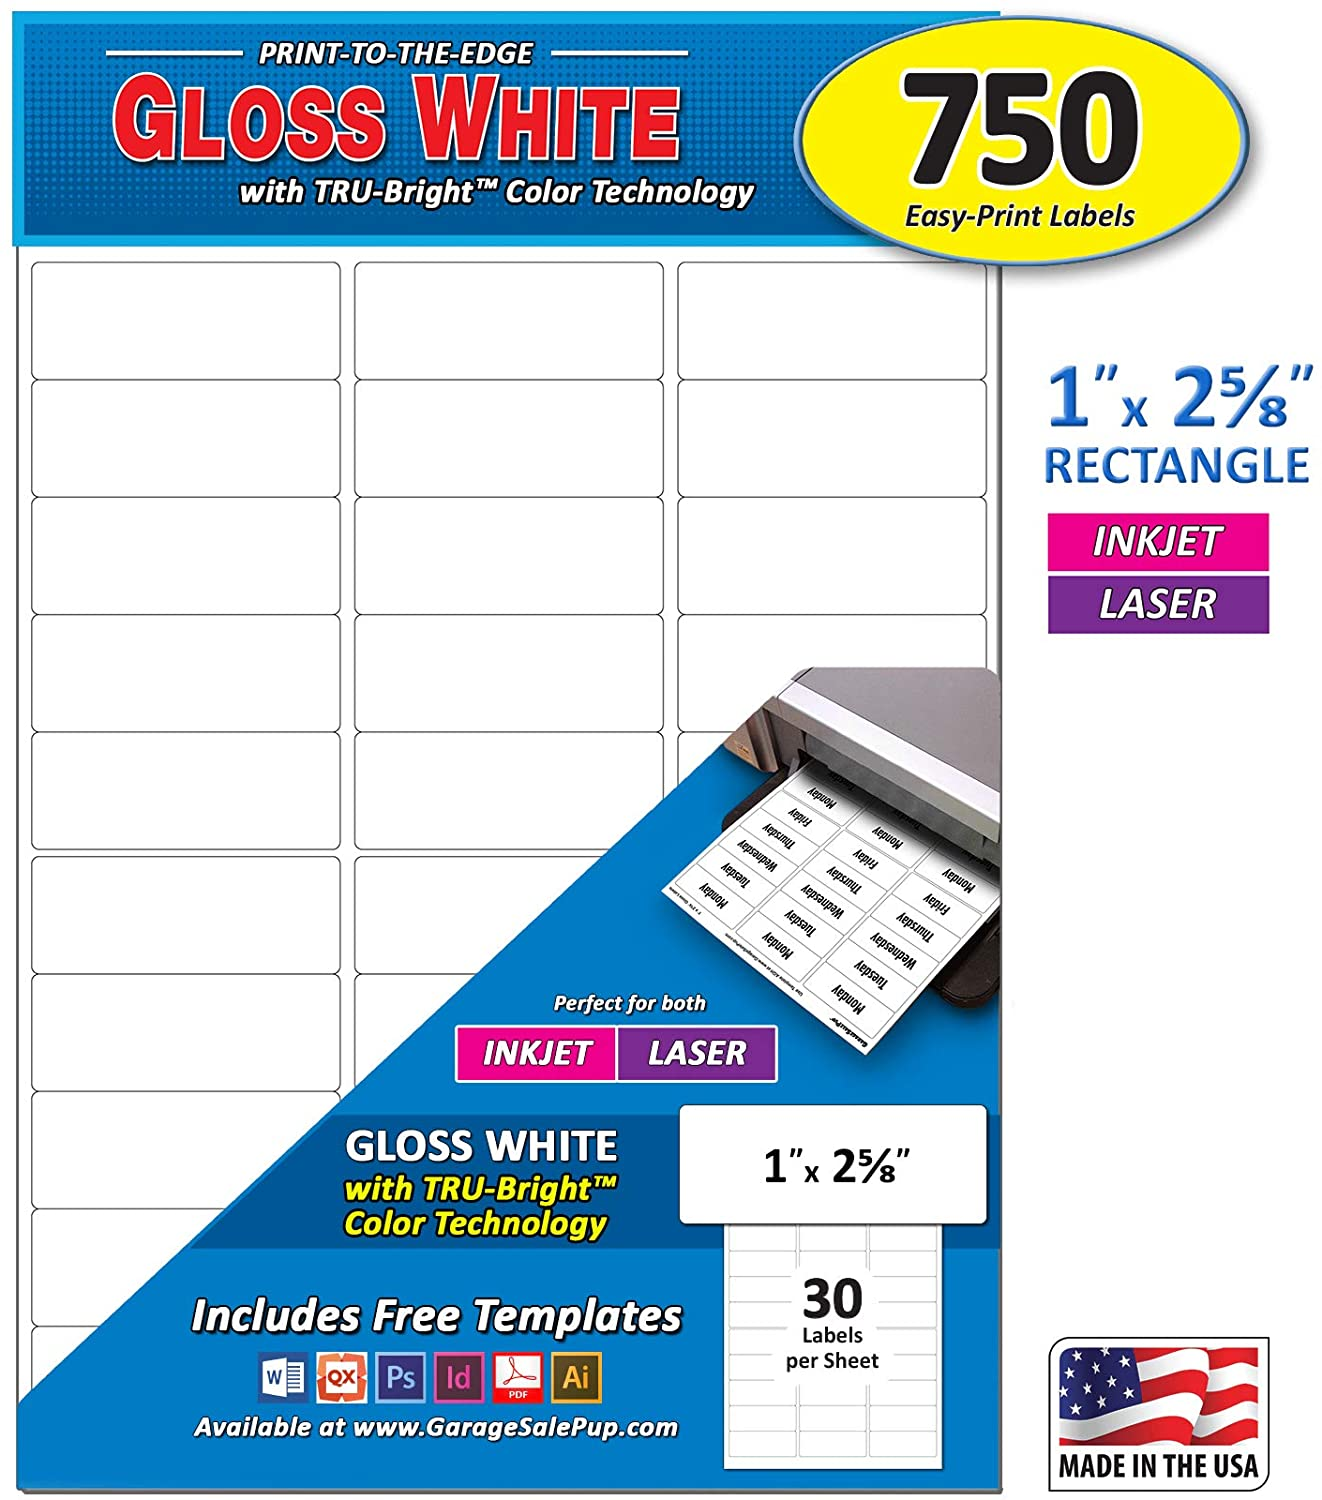 Pack of 750, 1 x 2-5/8 Inch, Bright White Gloss Mailing Address Labels for Laser and Inkjet Printers, Rectangle, 1 x 2.625 in.